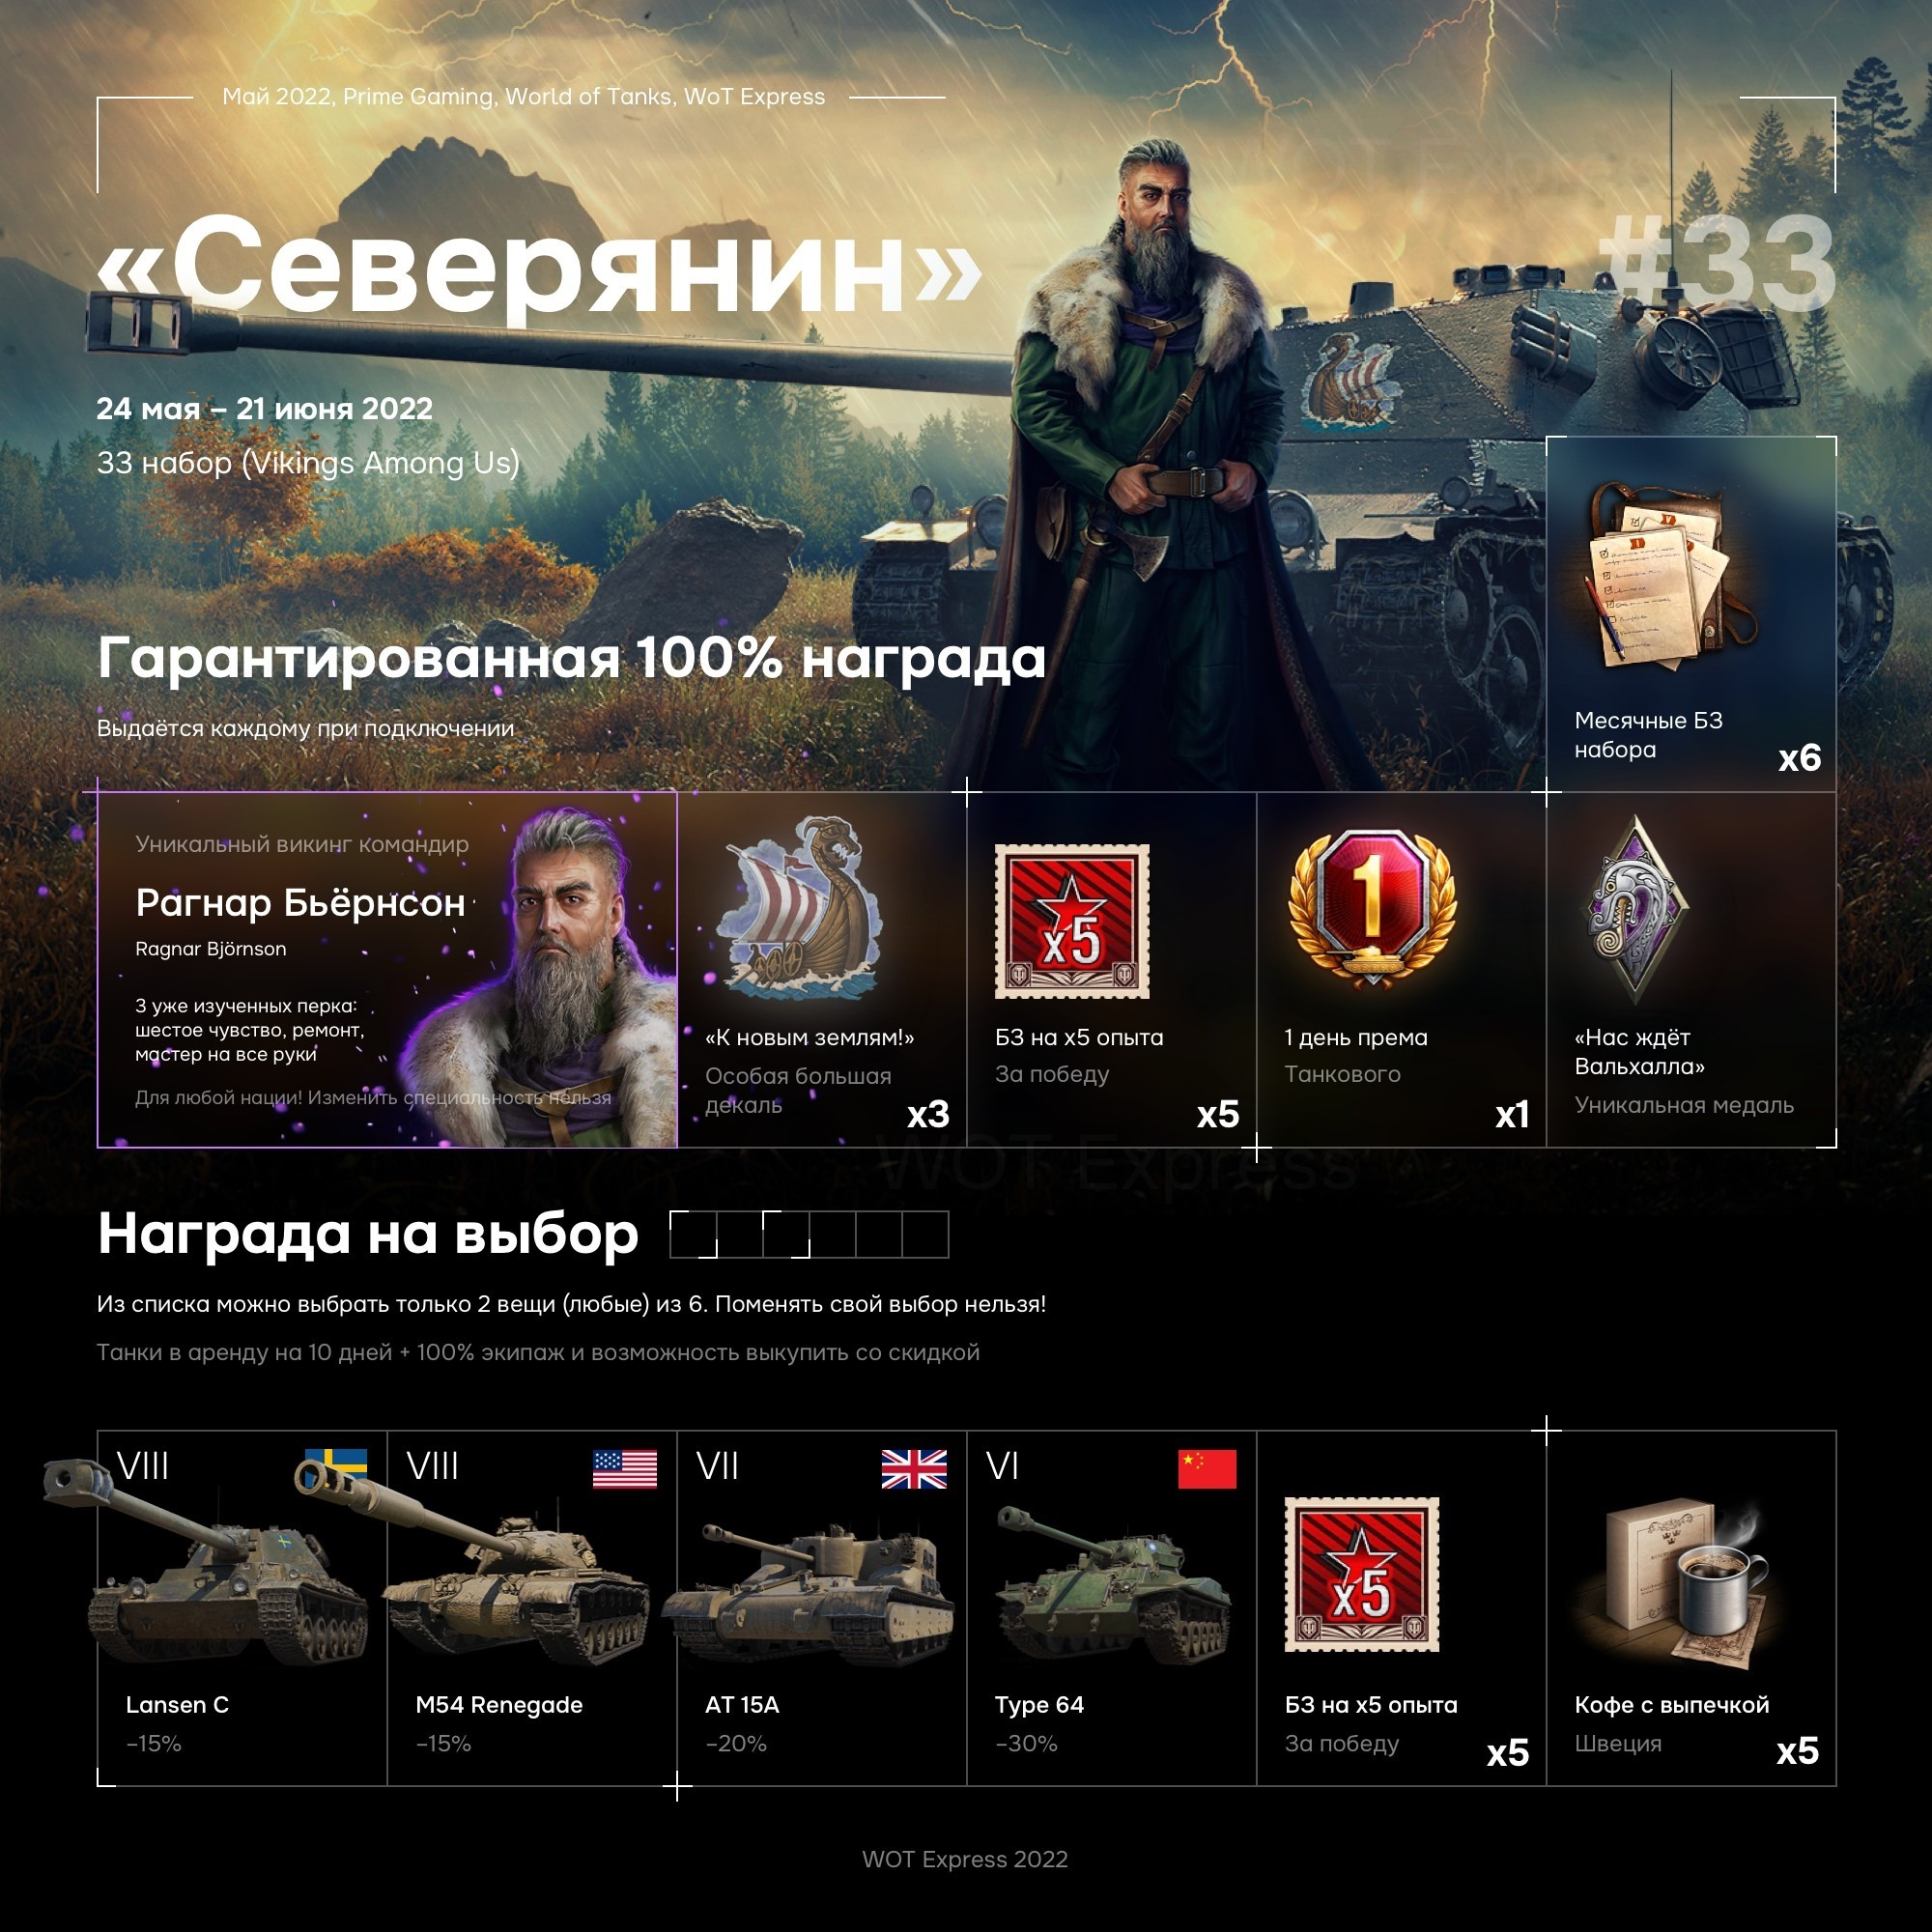 Купить Twitch Prime Аккаунт Warframe / Apex Legends / Free Sub